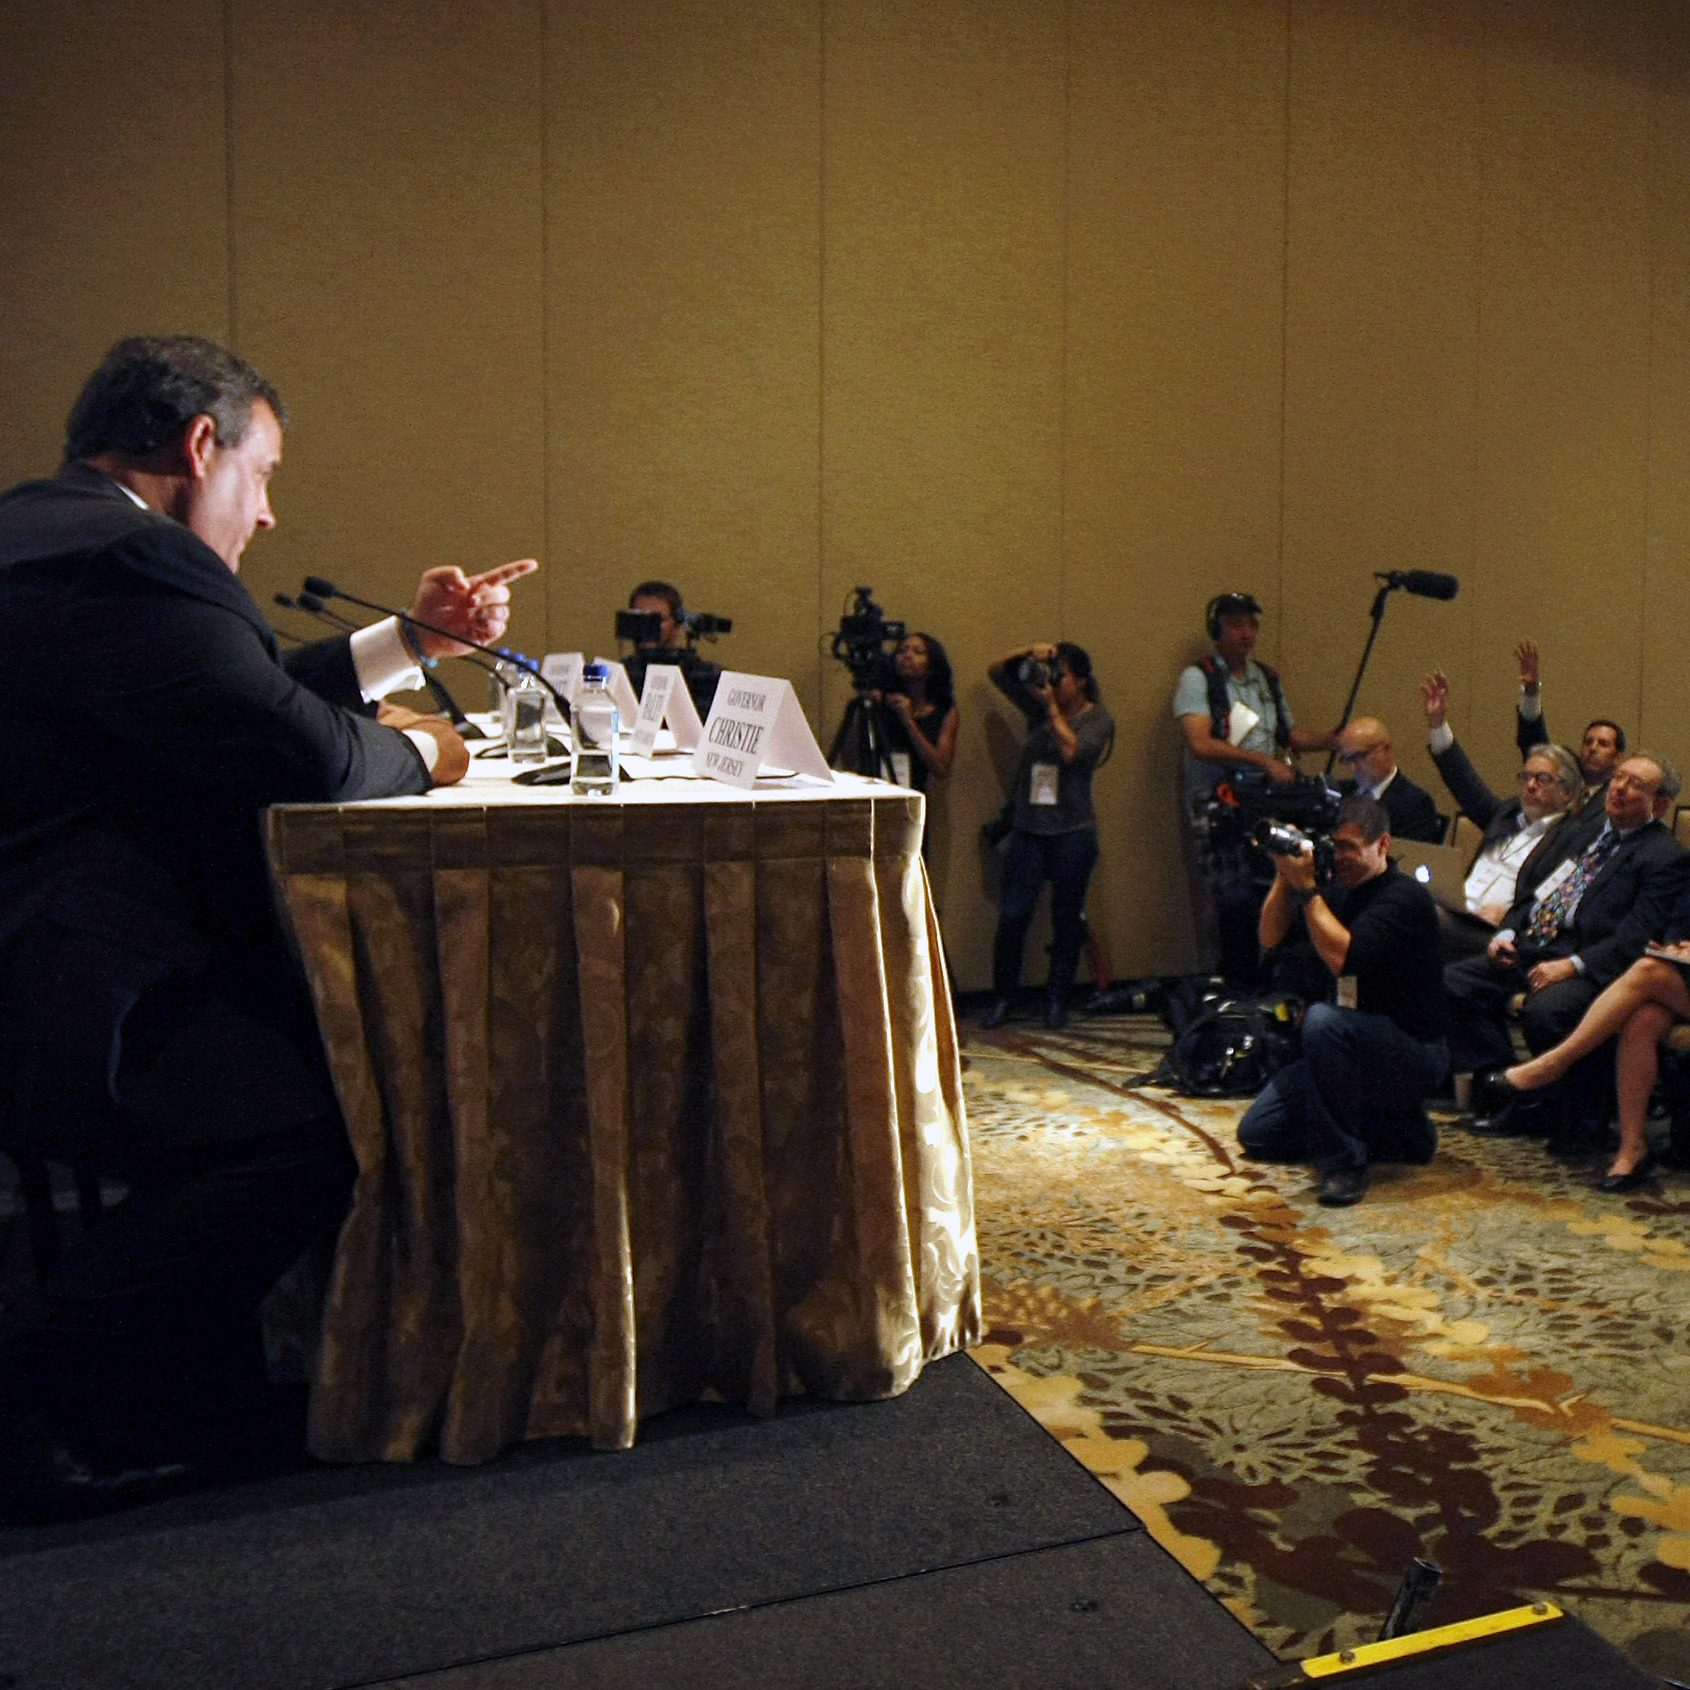 New Jersey Gov. Chris Christie takes questions during a news briefing at the Republican Governors Association conference on Thursday.